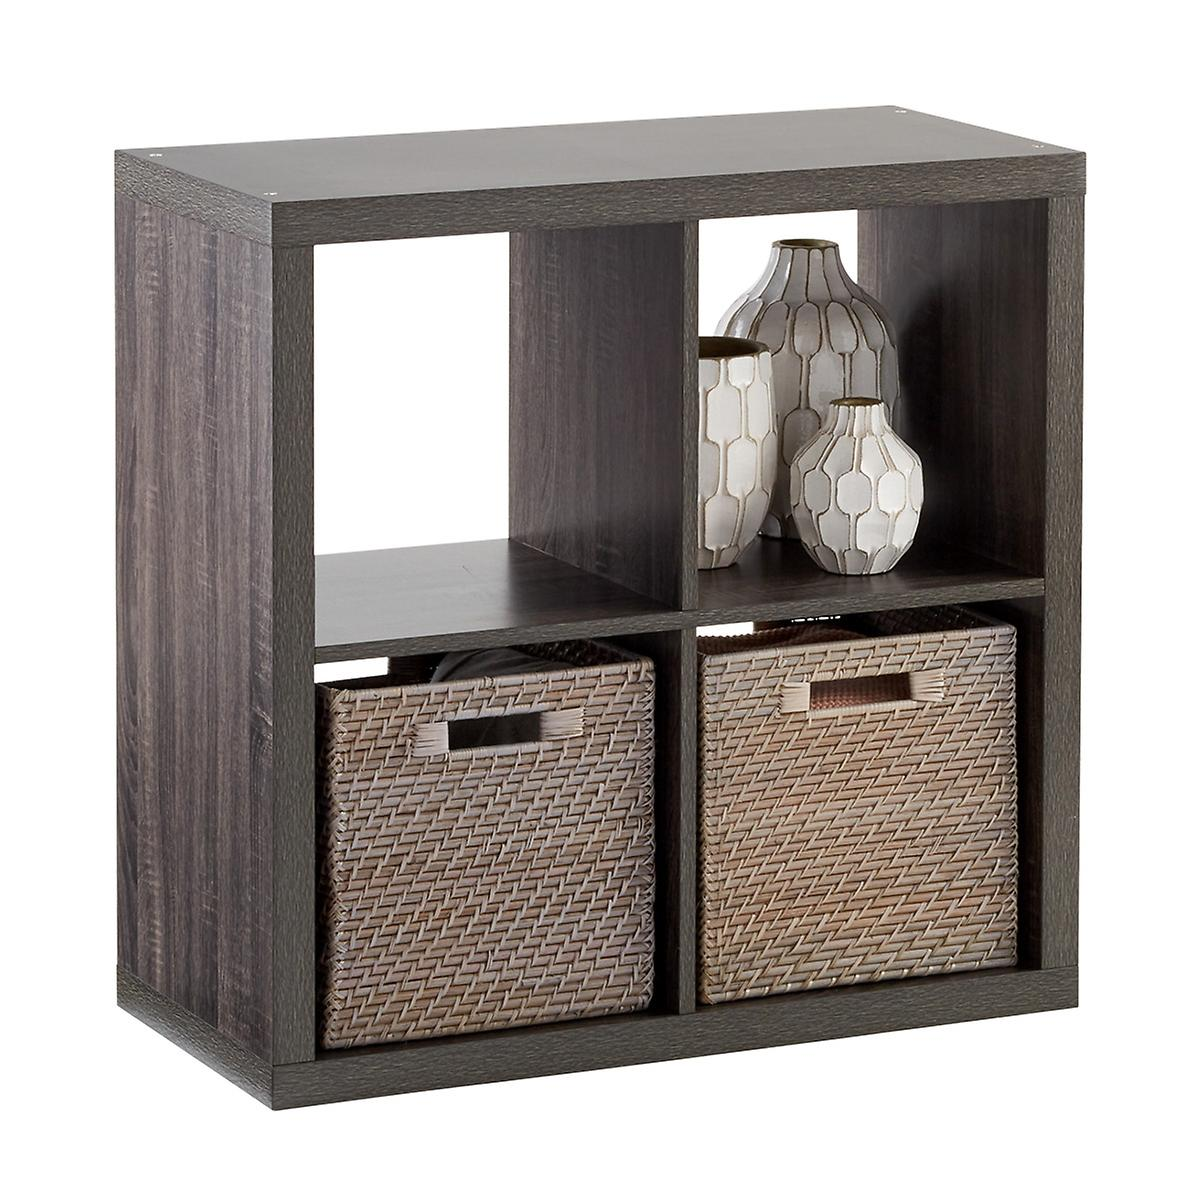 Weathered Smoke 4 Cube Cubby Shelving